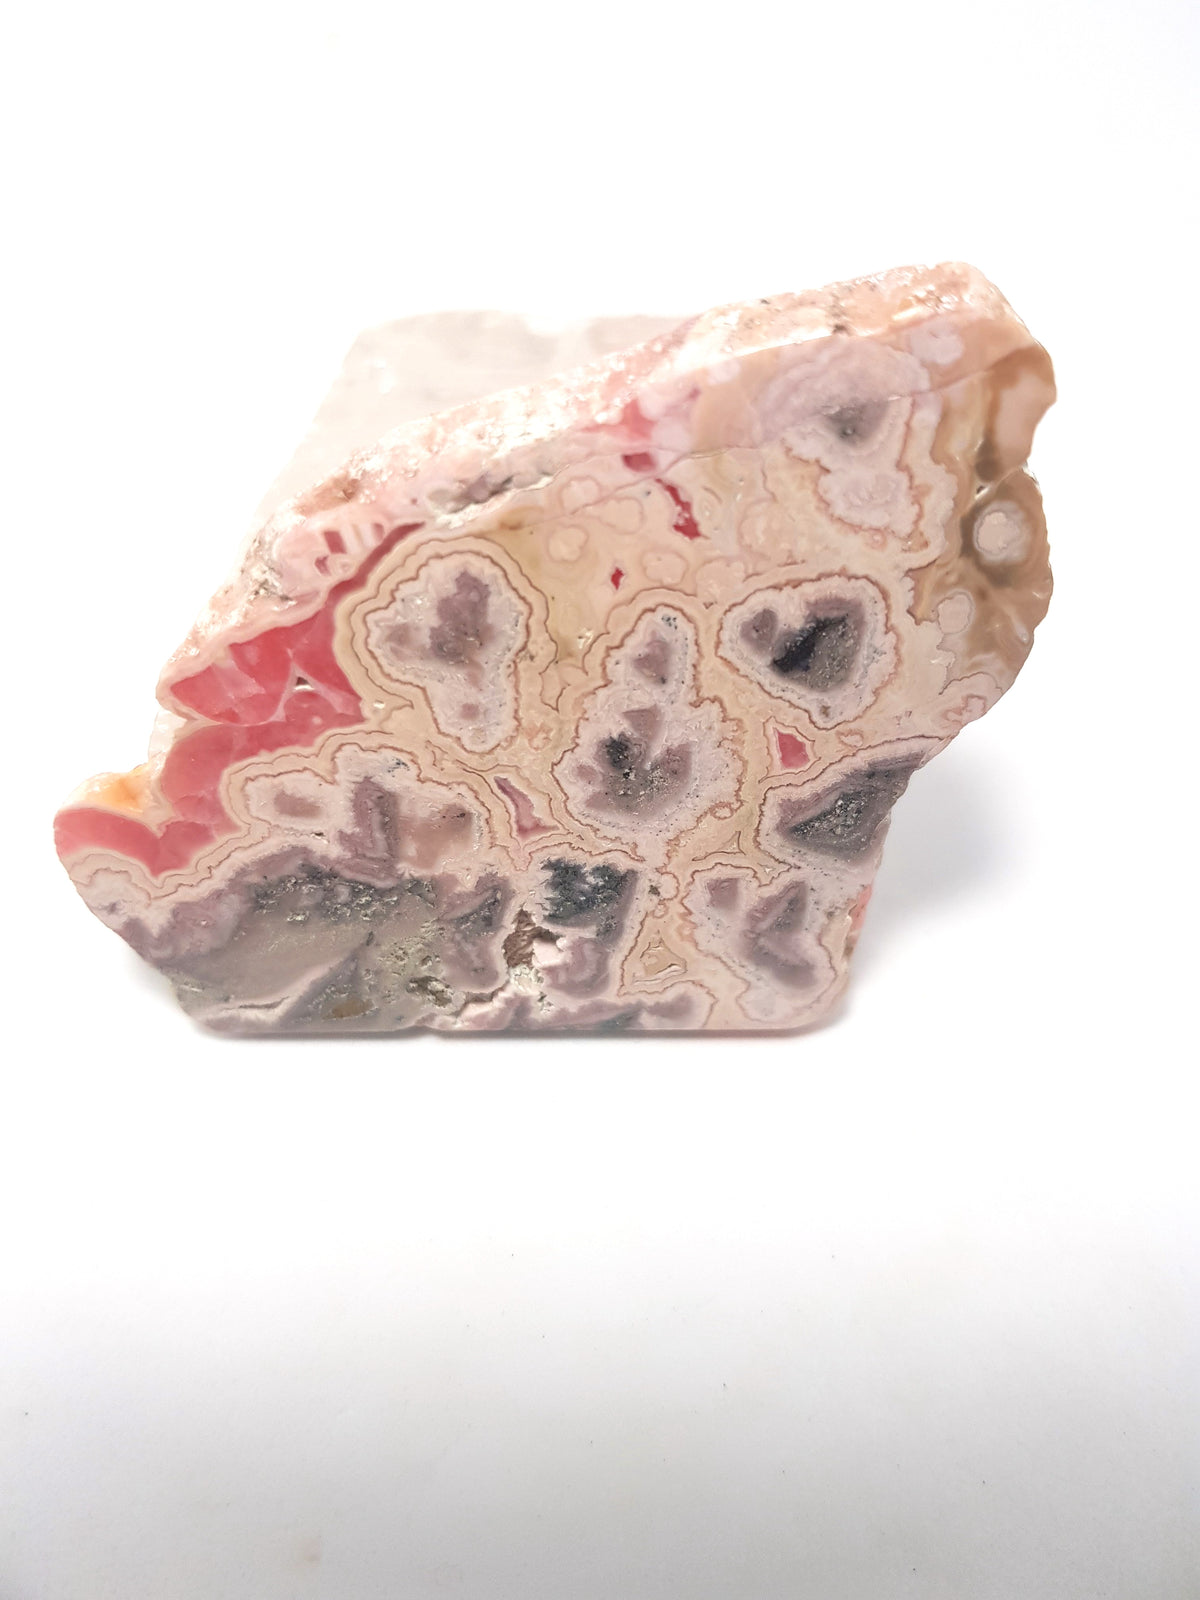 polished slice of rhodochrosite. This consists of bands of pink materials. The colours range from a deep pink to a pink tinted grey.